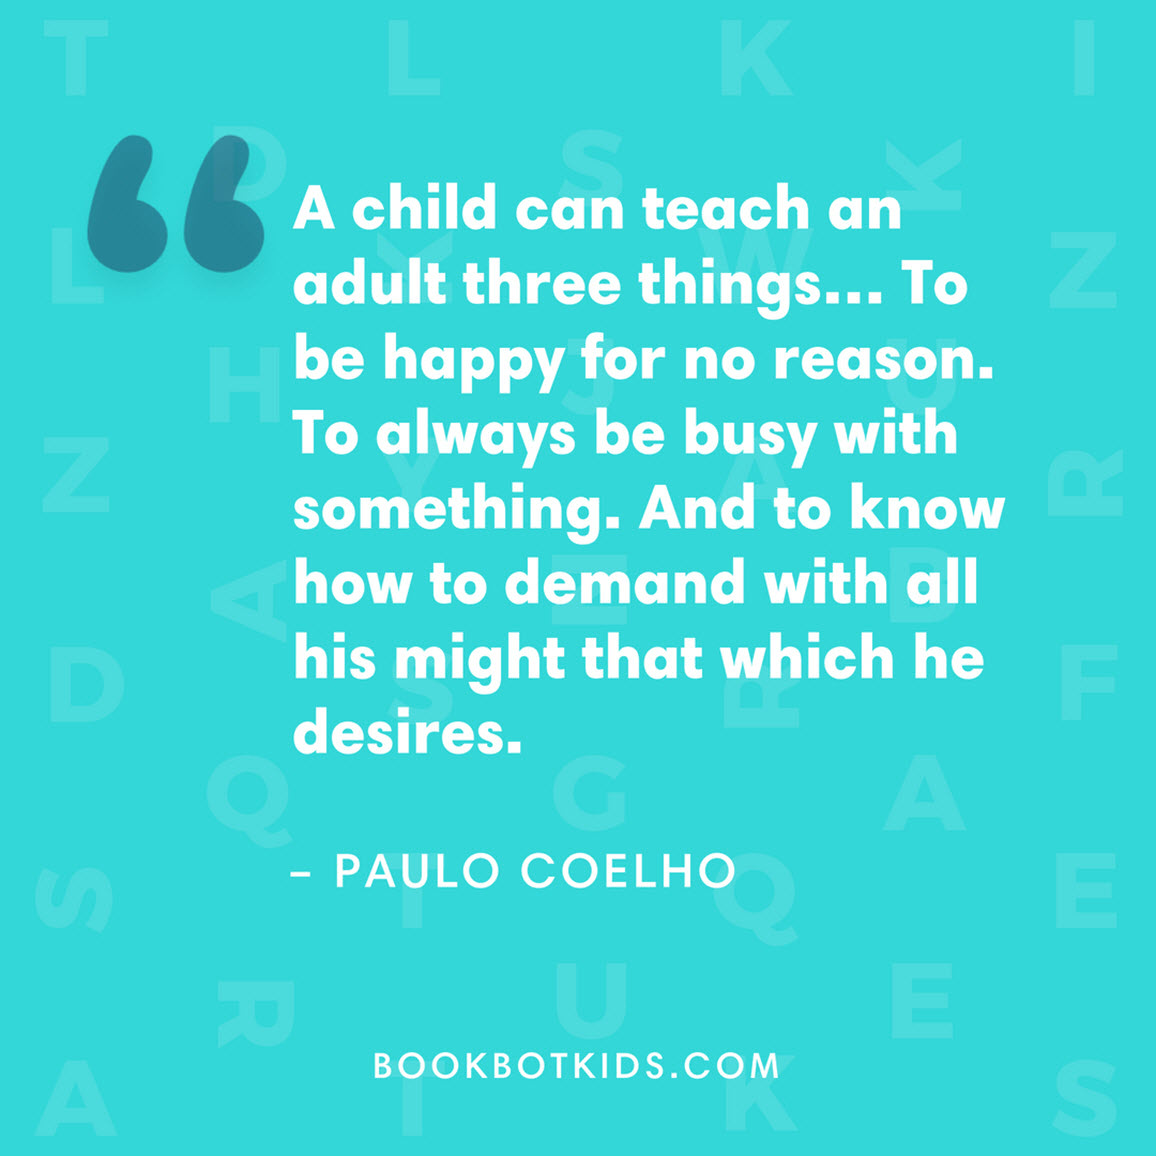 A child can teach an adult three things… To be happy for no reason. To always be busy with something. And to know how to demand with all his might that which he desires. – Paulo Coelho